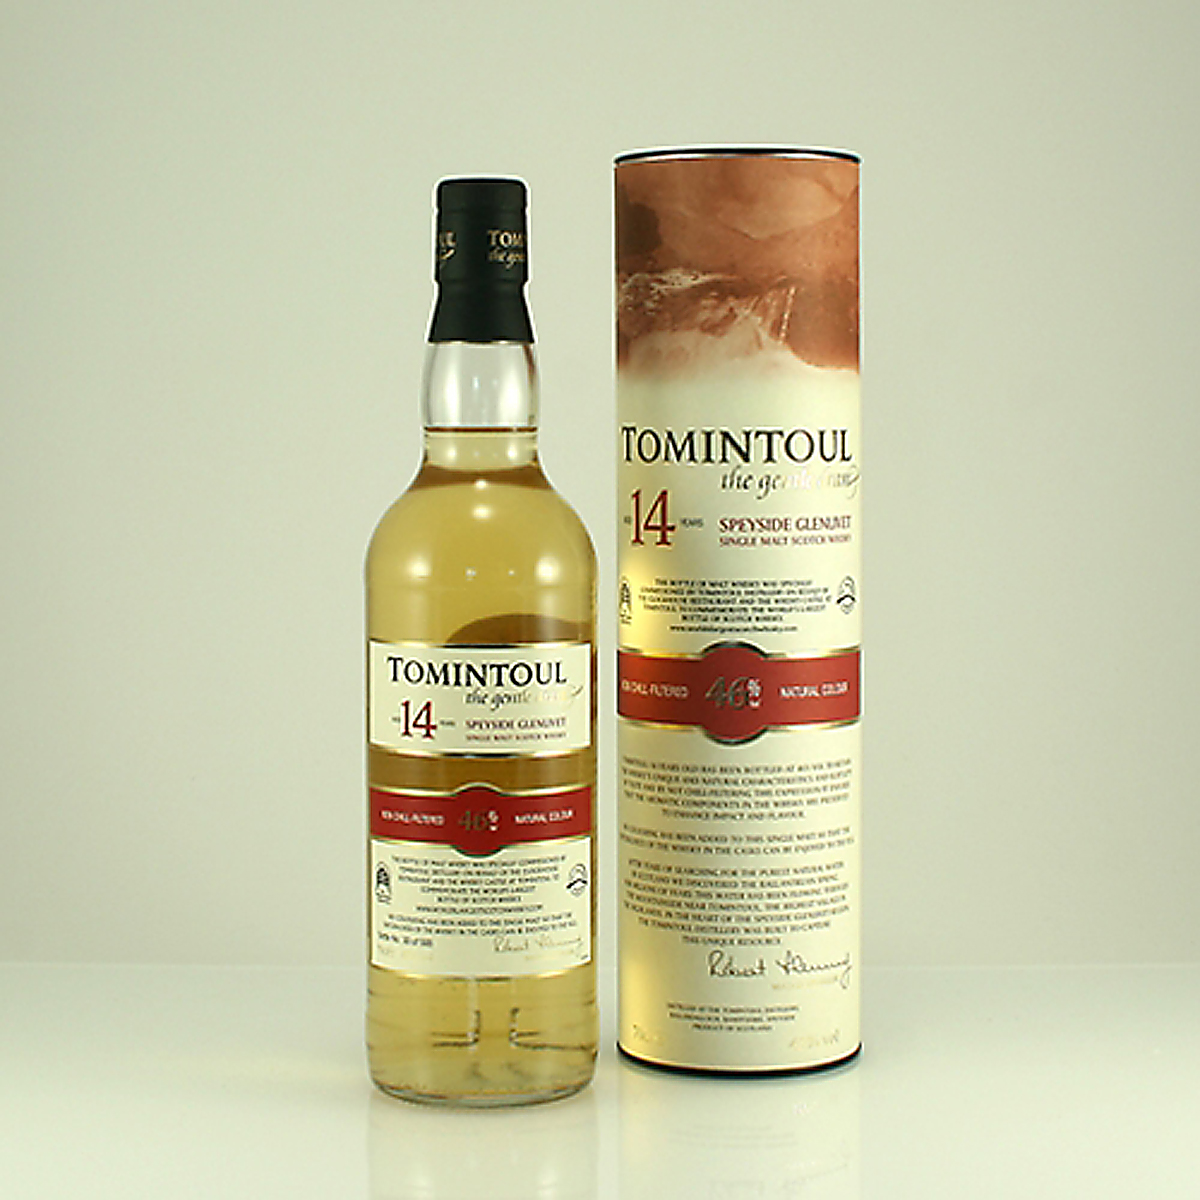 TOMINTOUL 14 Y/O Commemorative Bottling 46% 70cl